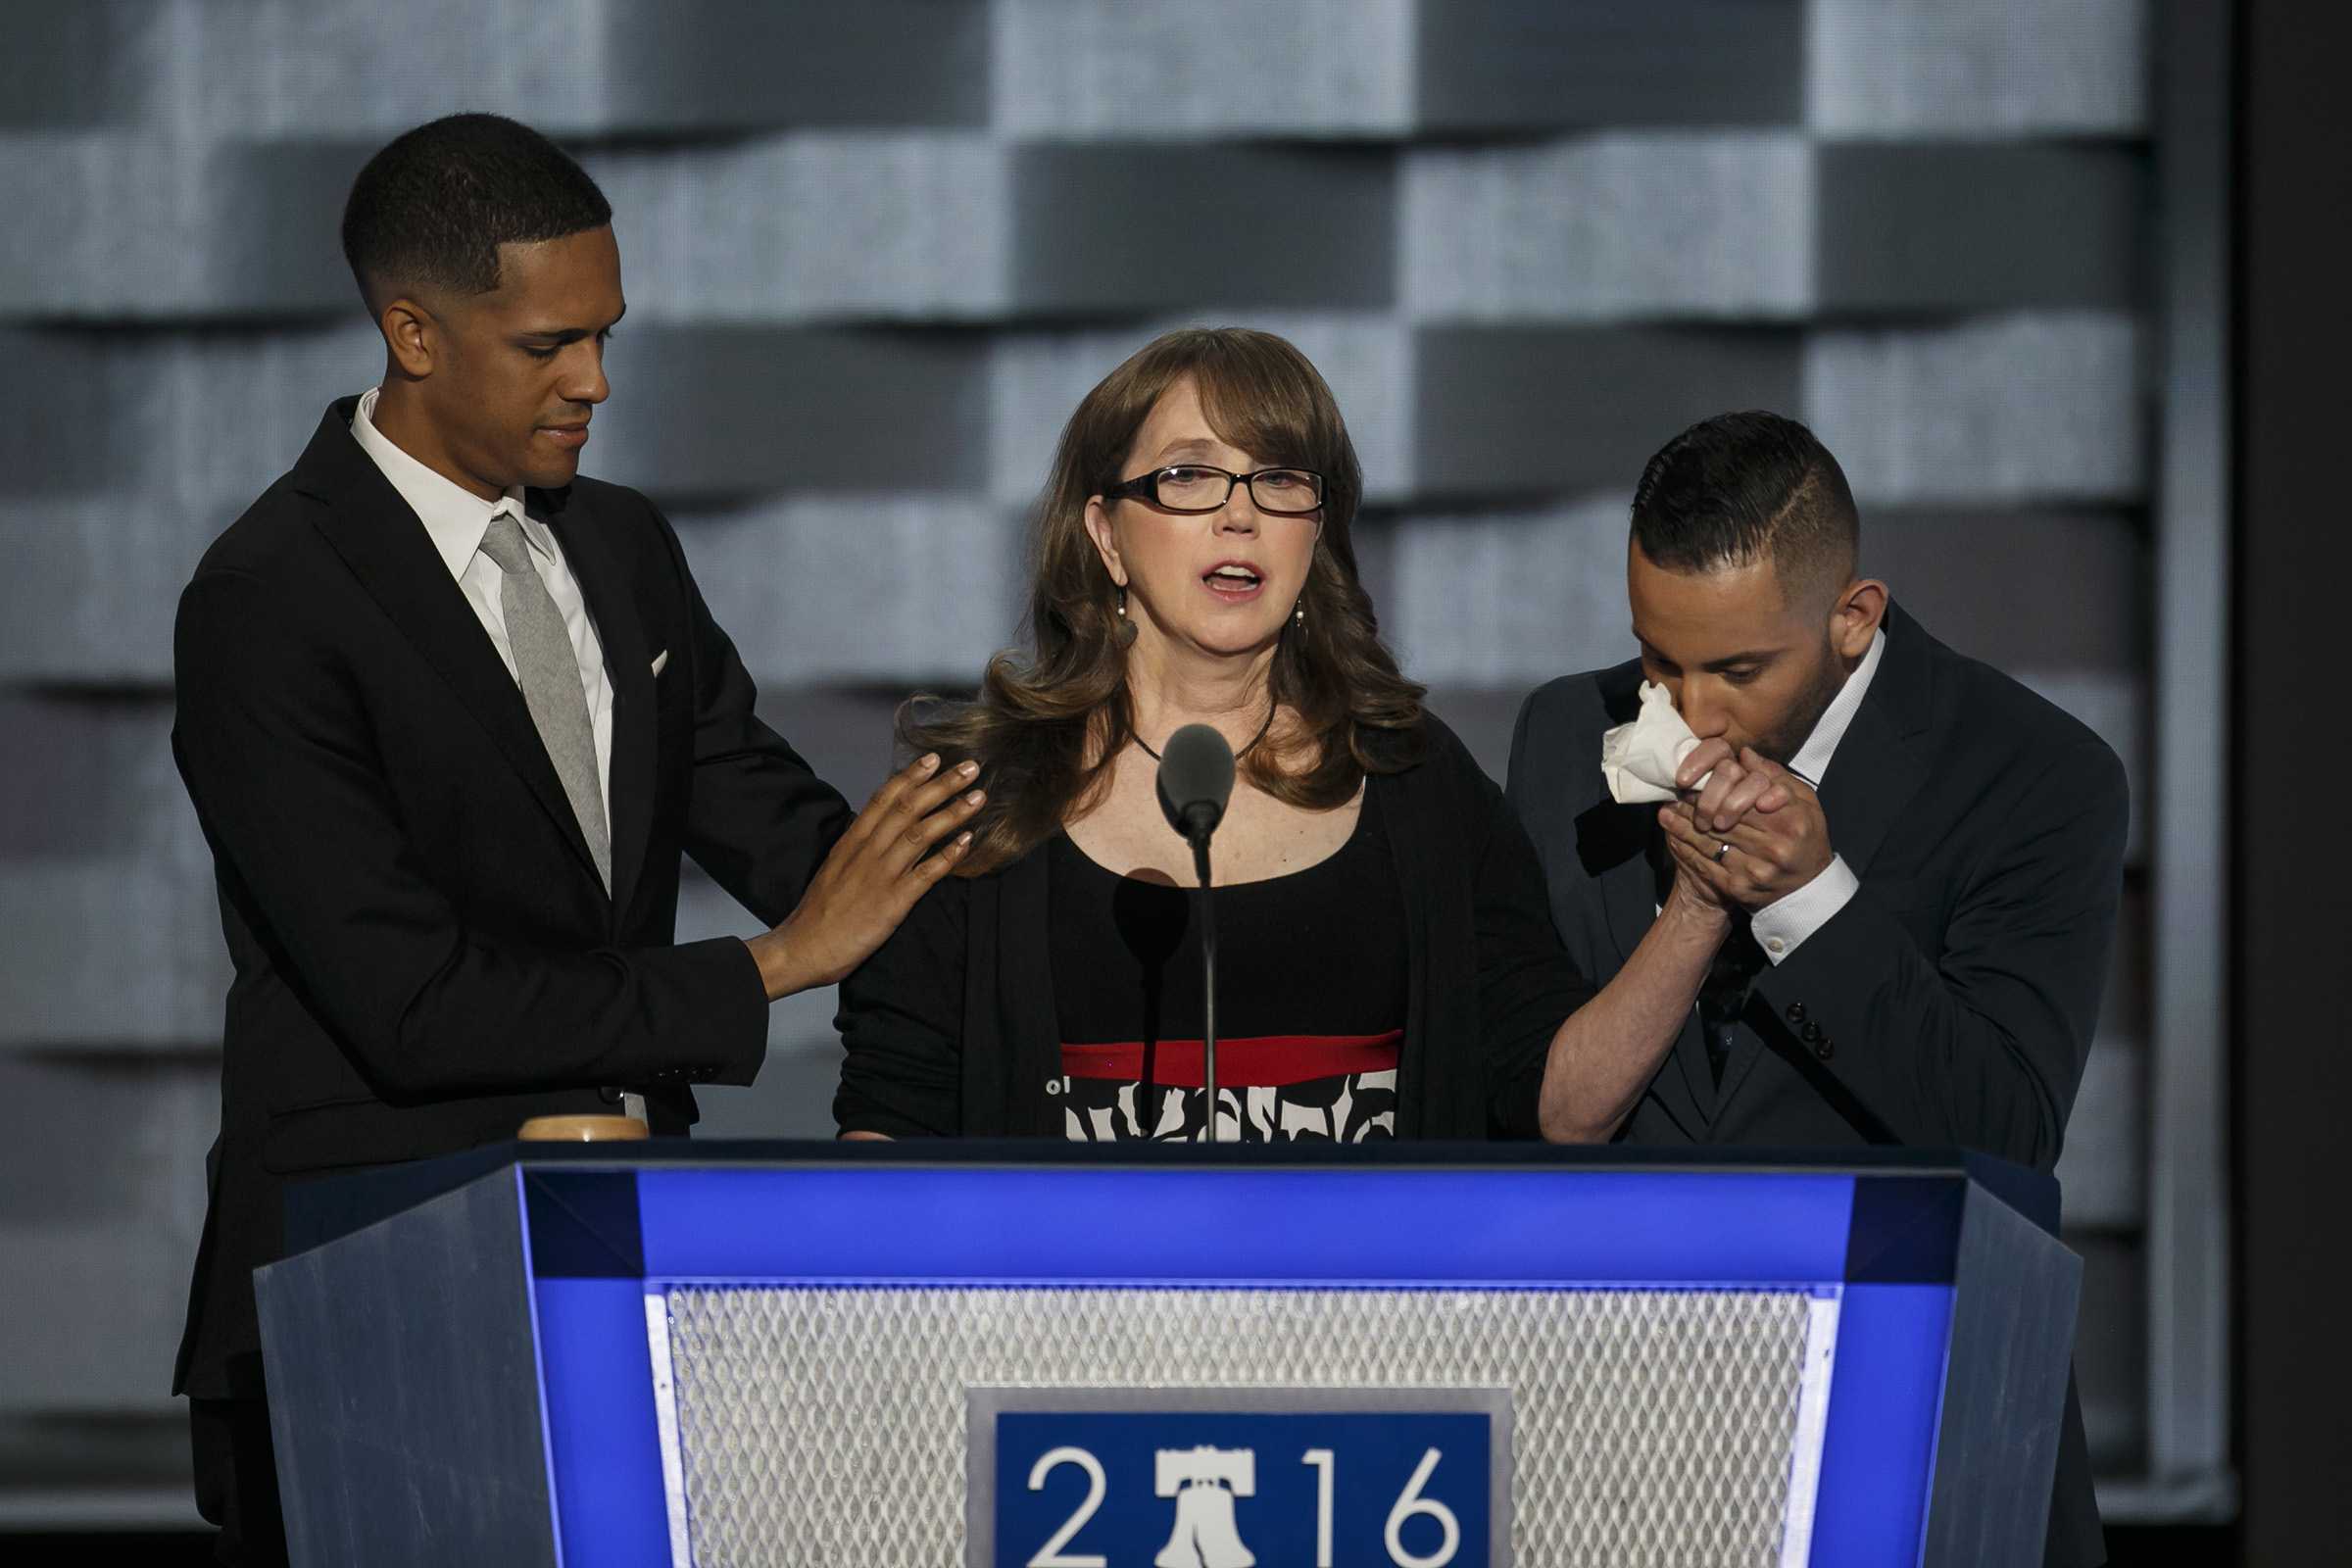 Brandon Wolf, from left, Christine Leinonen and Jose Arraigada speak about gun control at the 2016 Democratic National Convention, in Philadelphia on July 27, 2016.